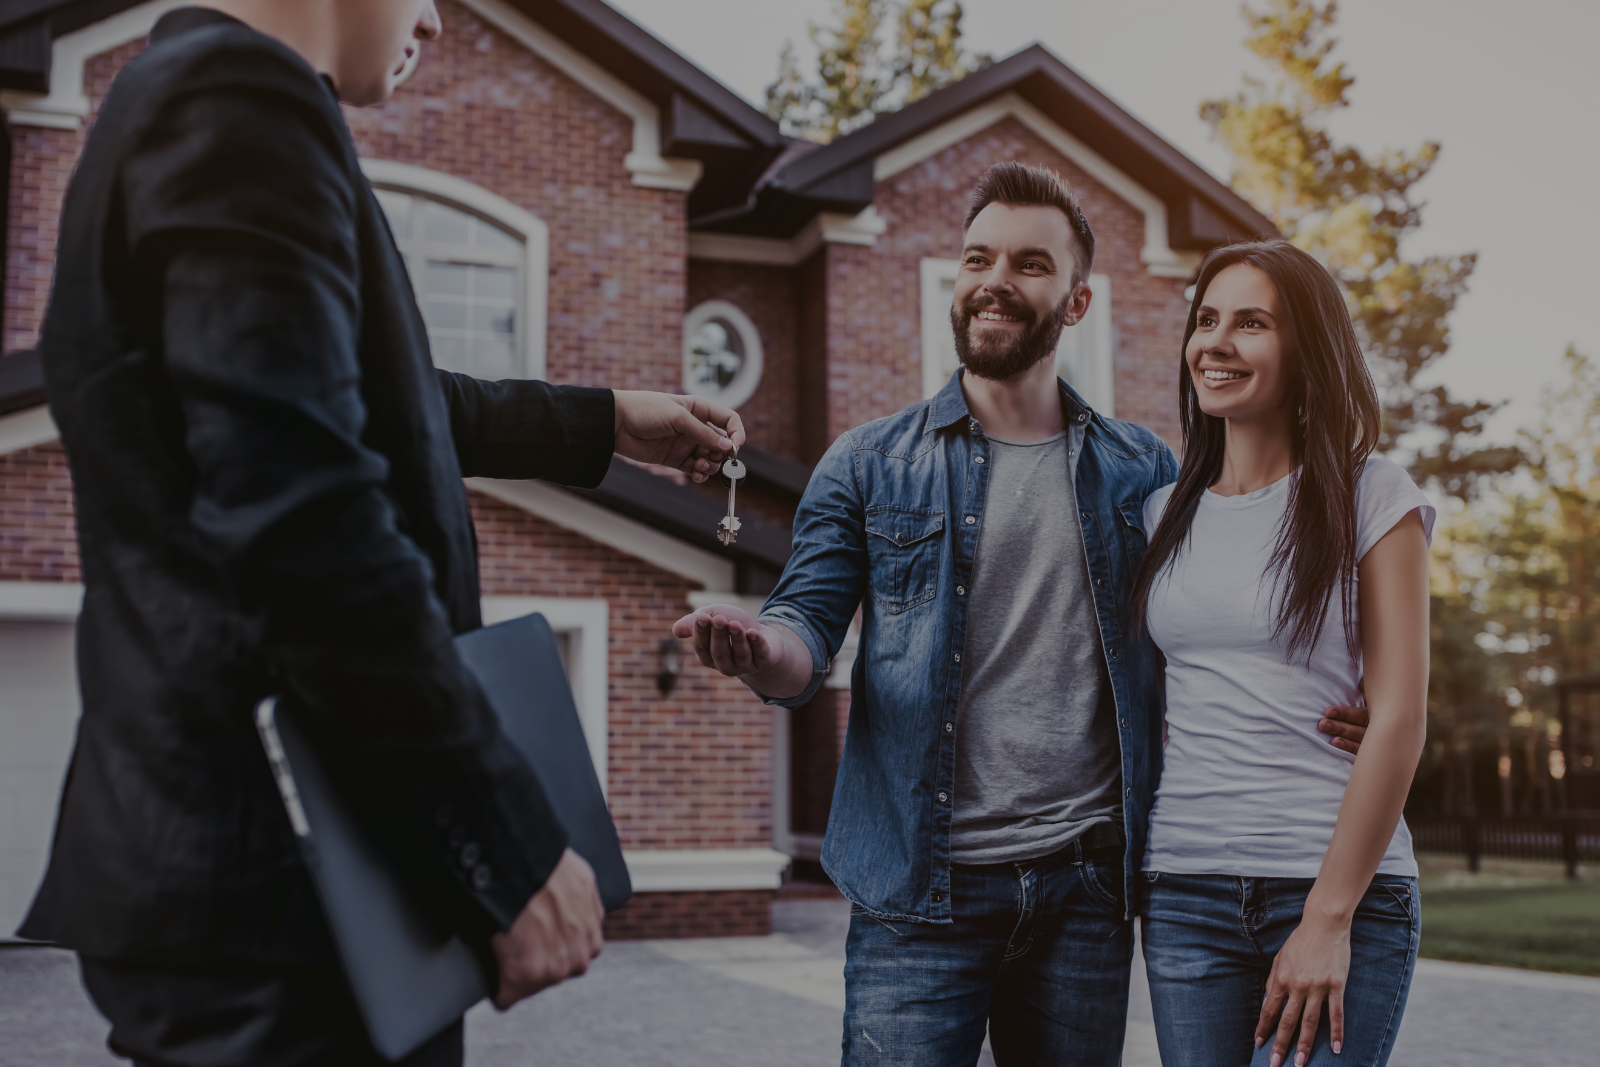 purchase property, solicitor, conveyancer, stamp duty, property lawyers, ivy law group, buy property, sydney, nsw property, sydney conveyancing lawyers